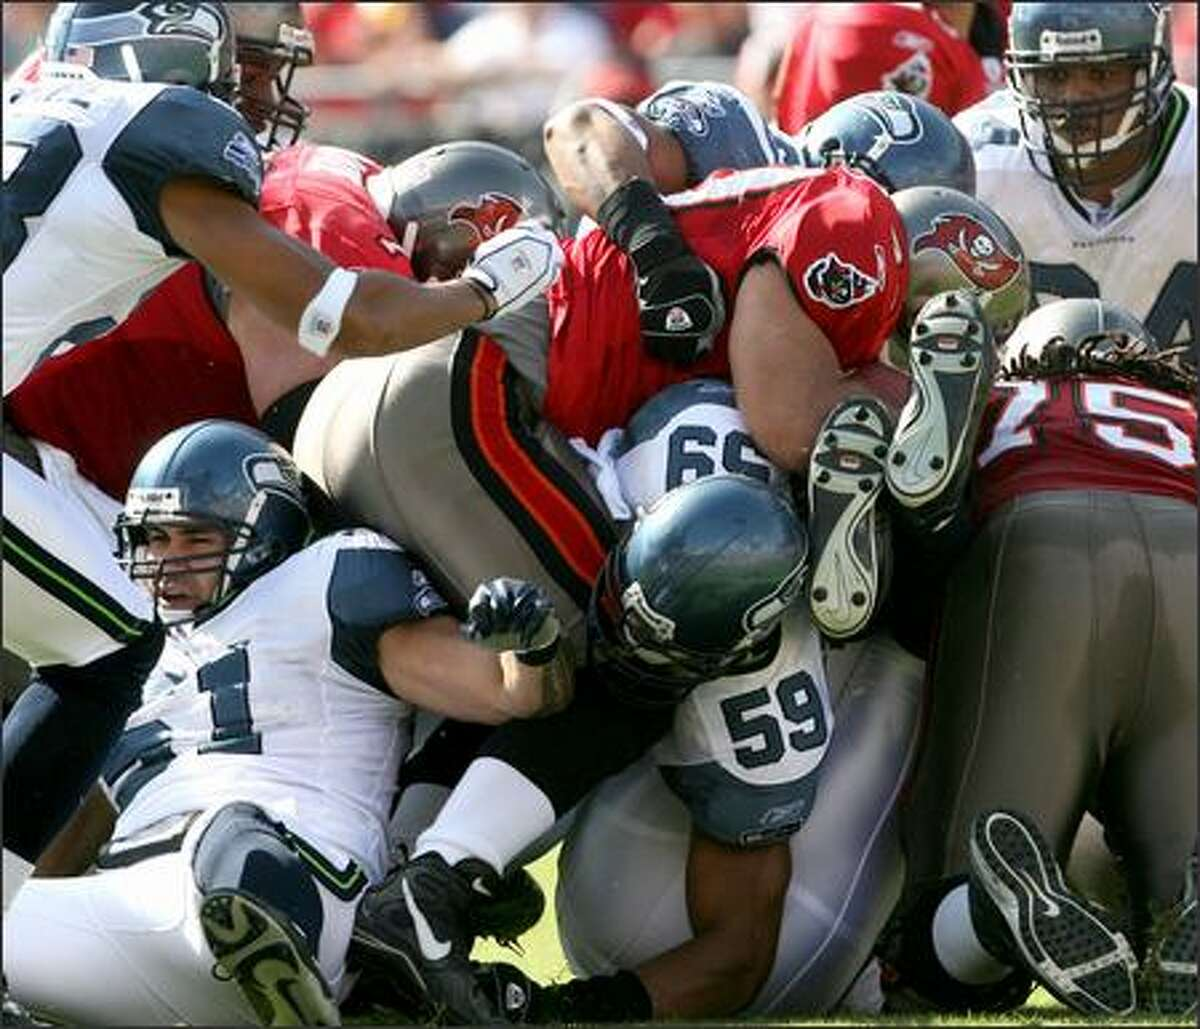 The Seahawks defense gang-tackles Mike Alstott for no gain in the first quarter of Sunday's game against the Tampa Bay Buccaneers. Seattle won 23-7.